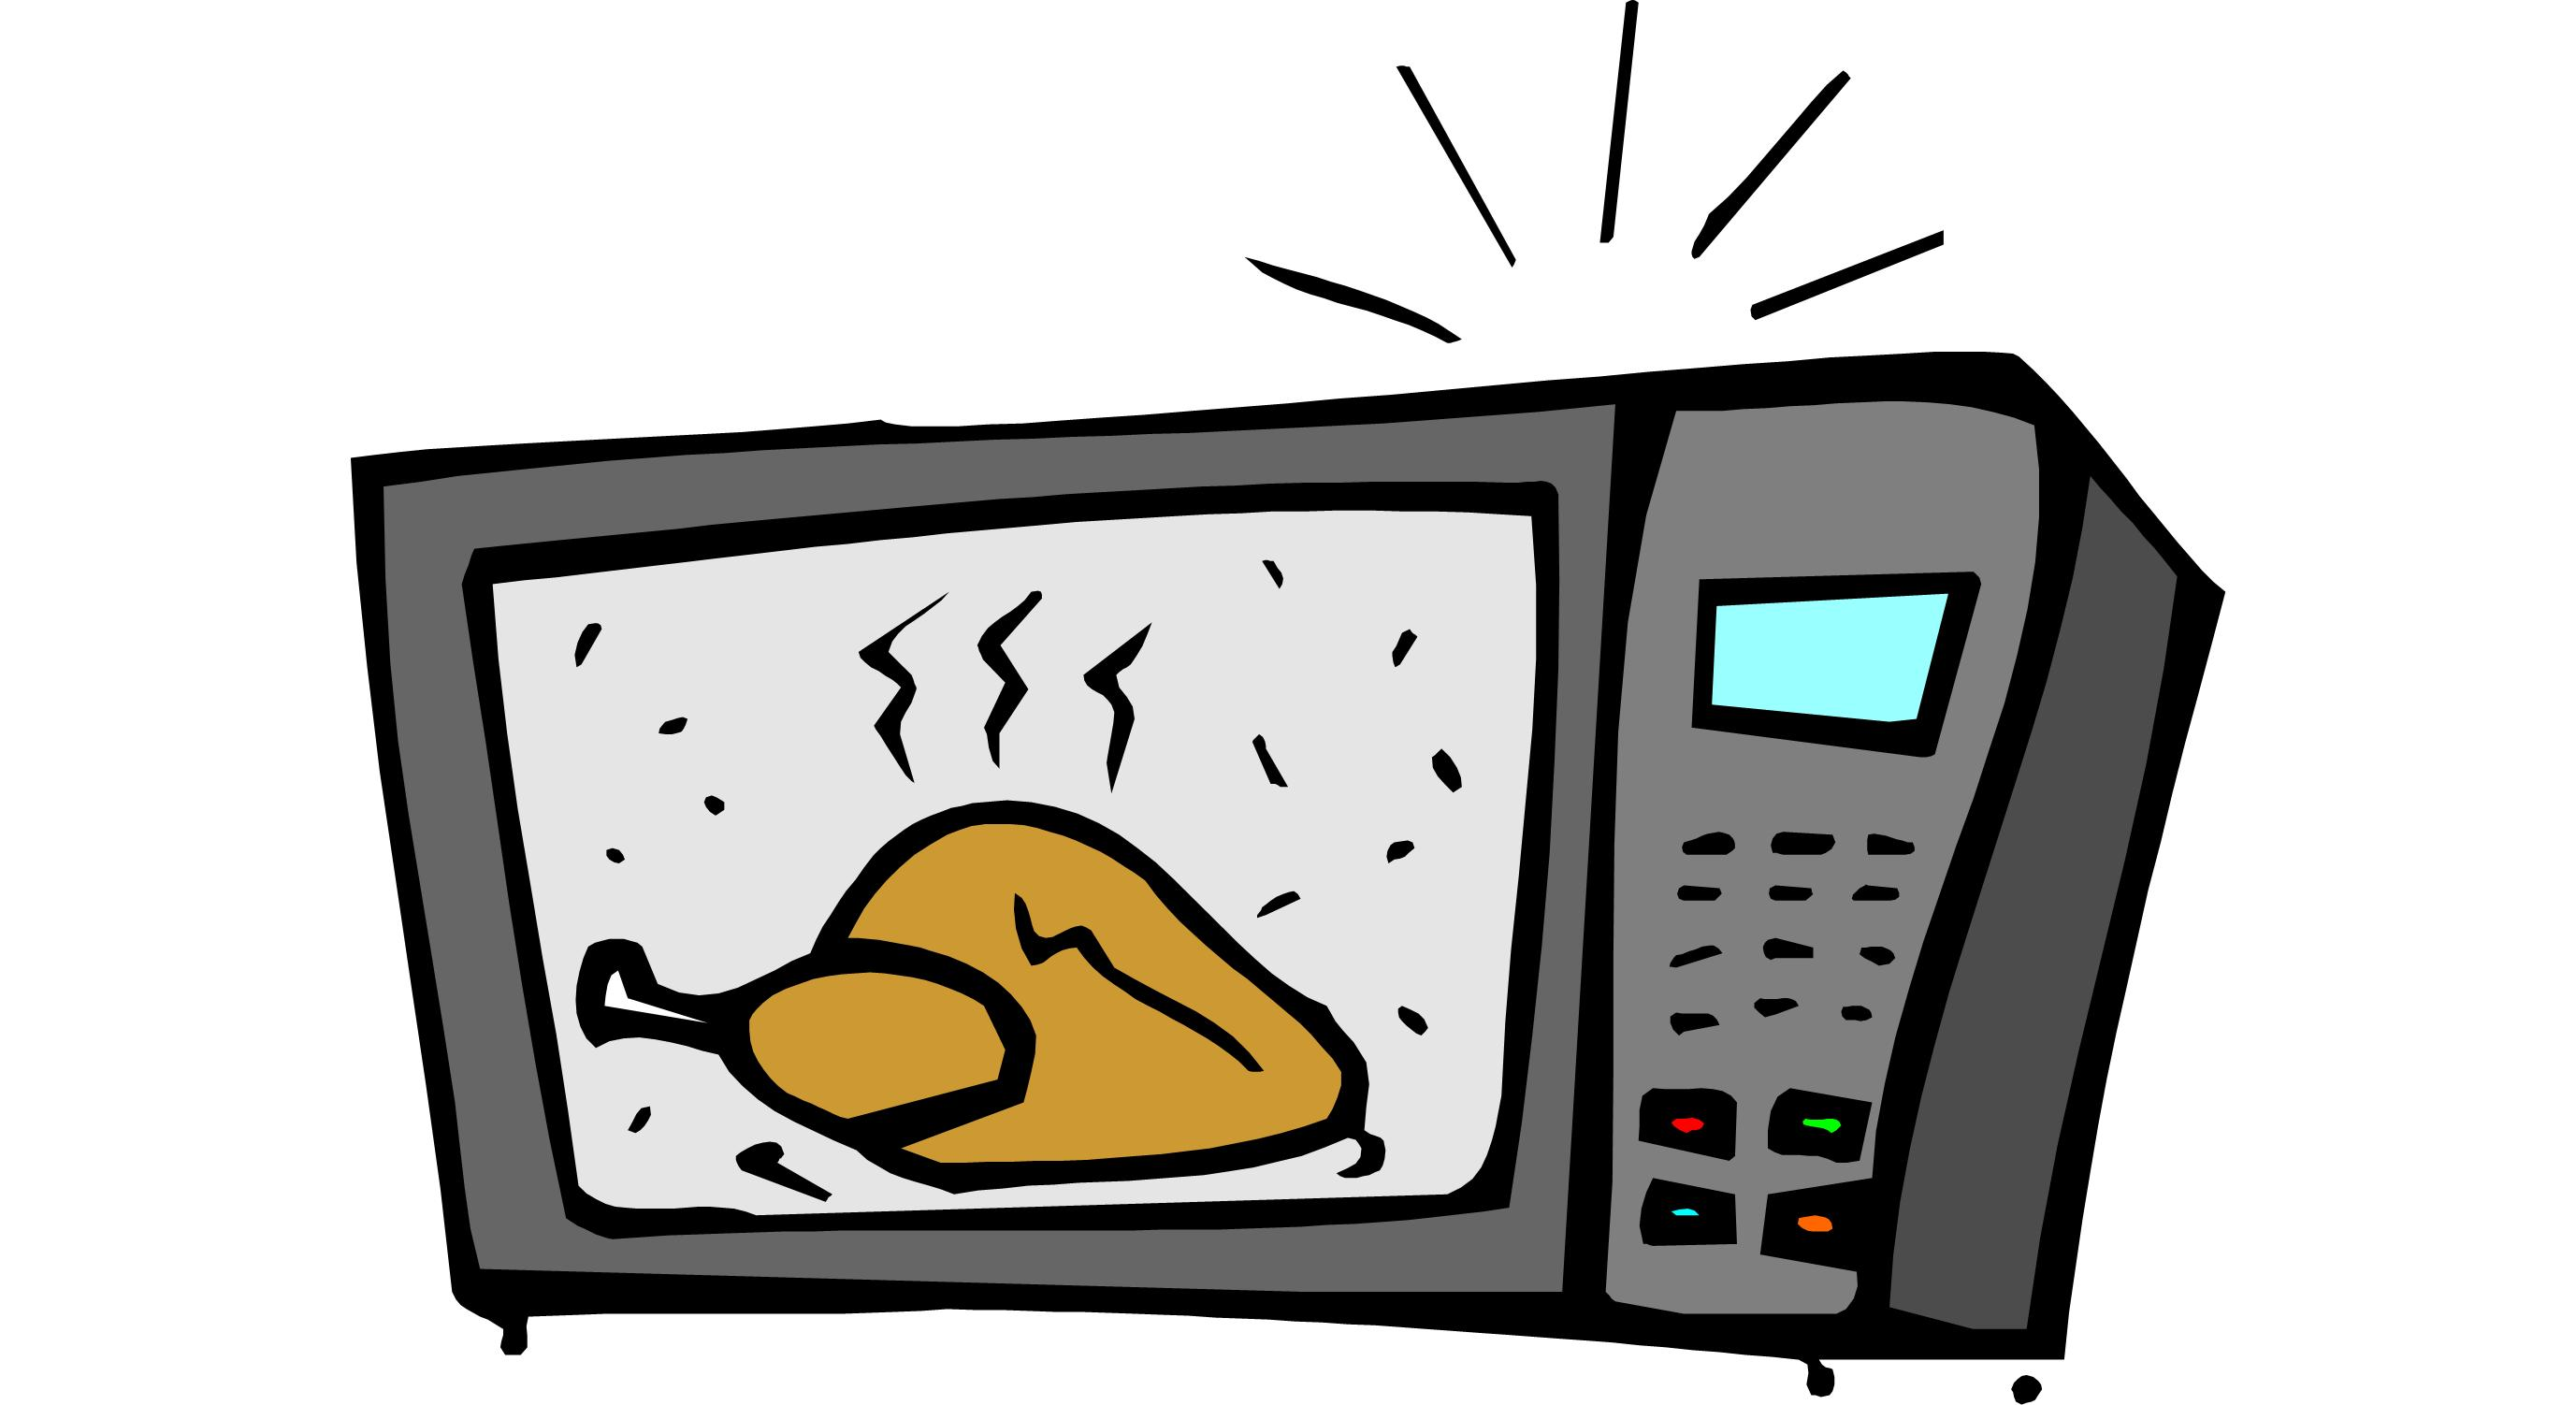 The Microwave Ovens Effect